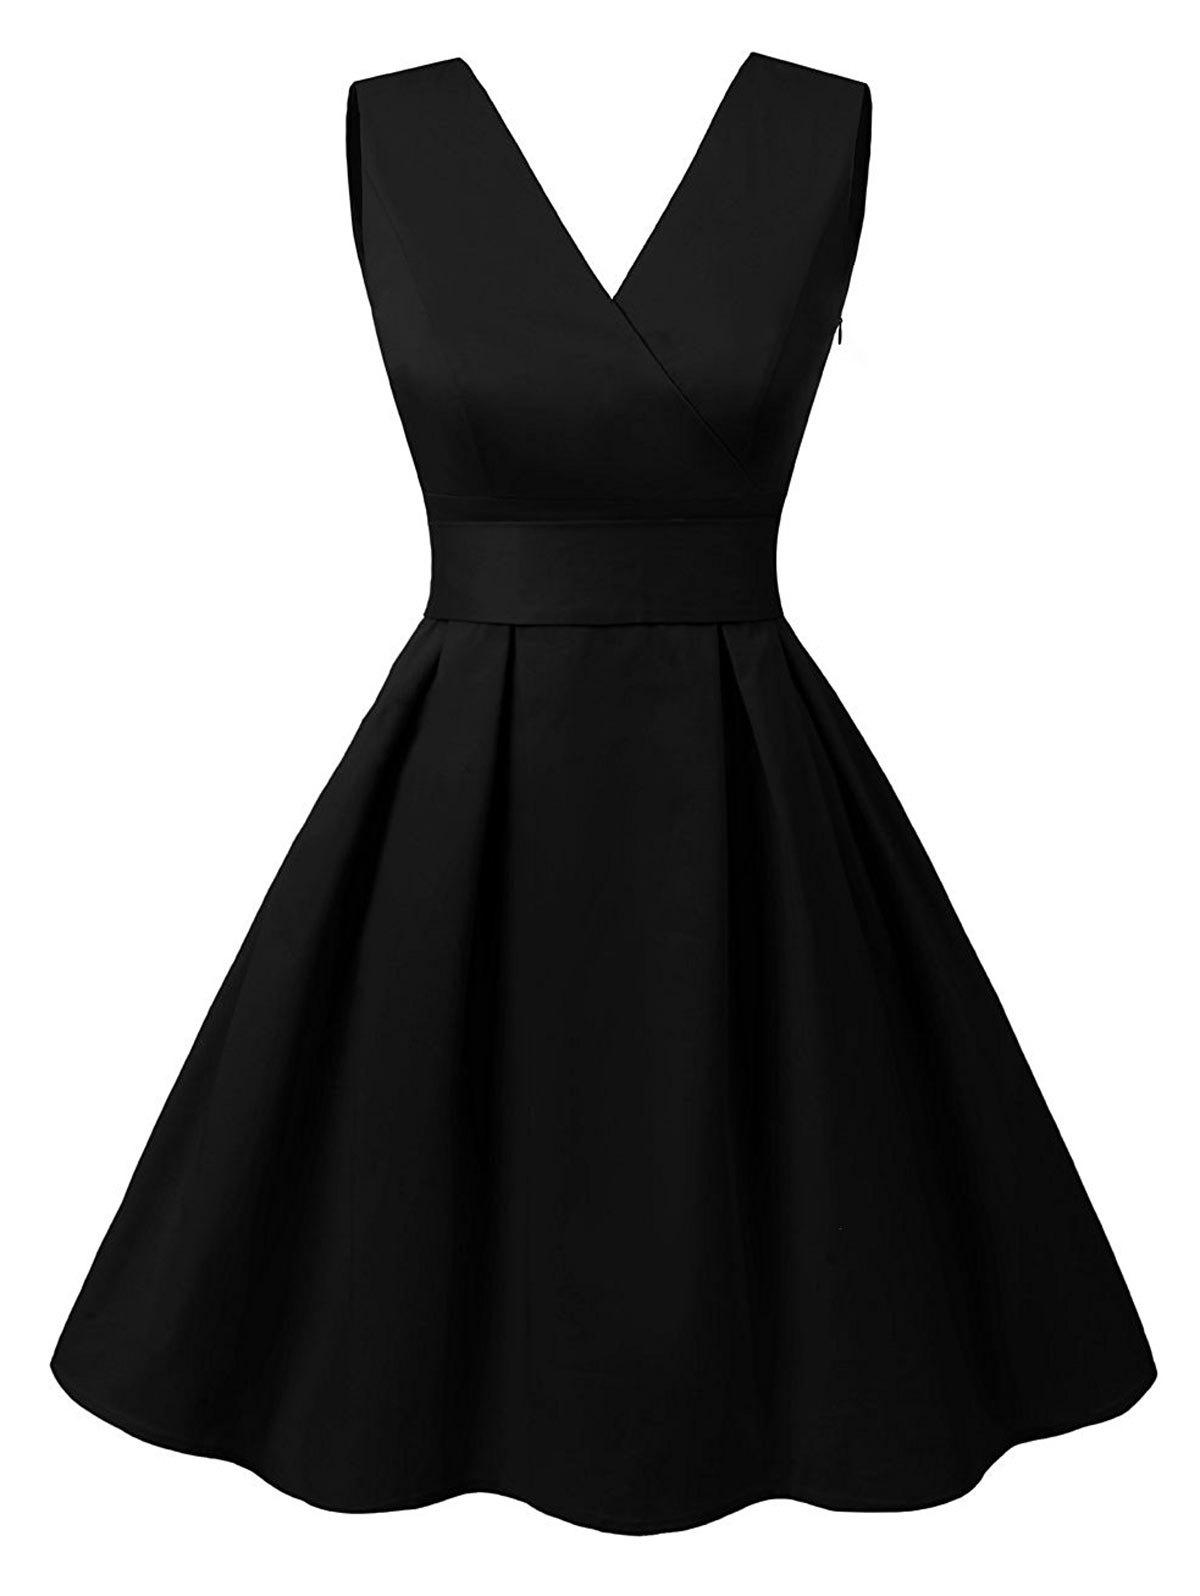 New Cut Out V Neck Vintage Pin Up Dress